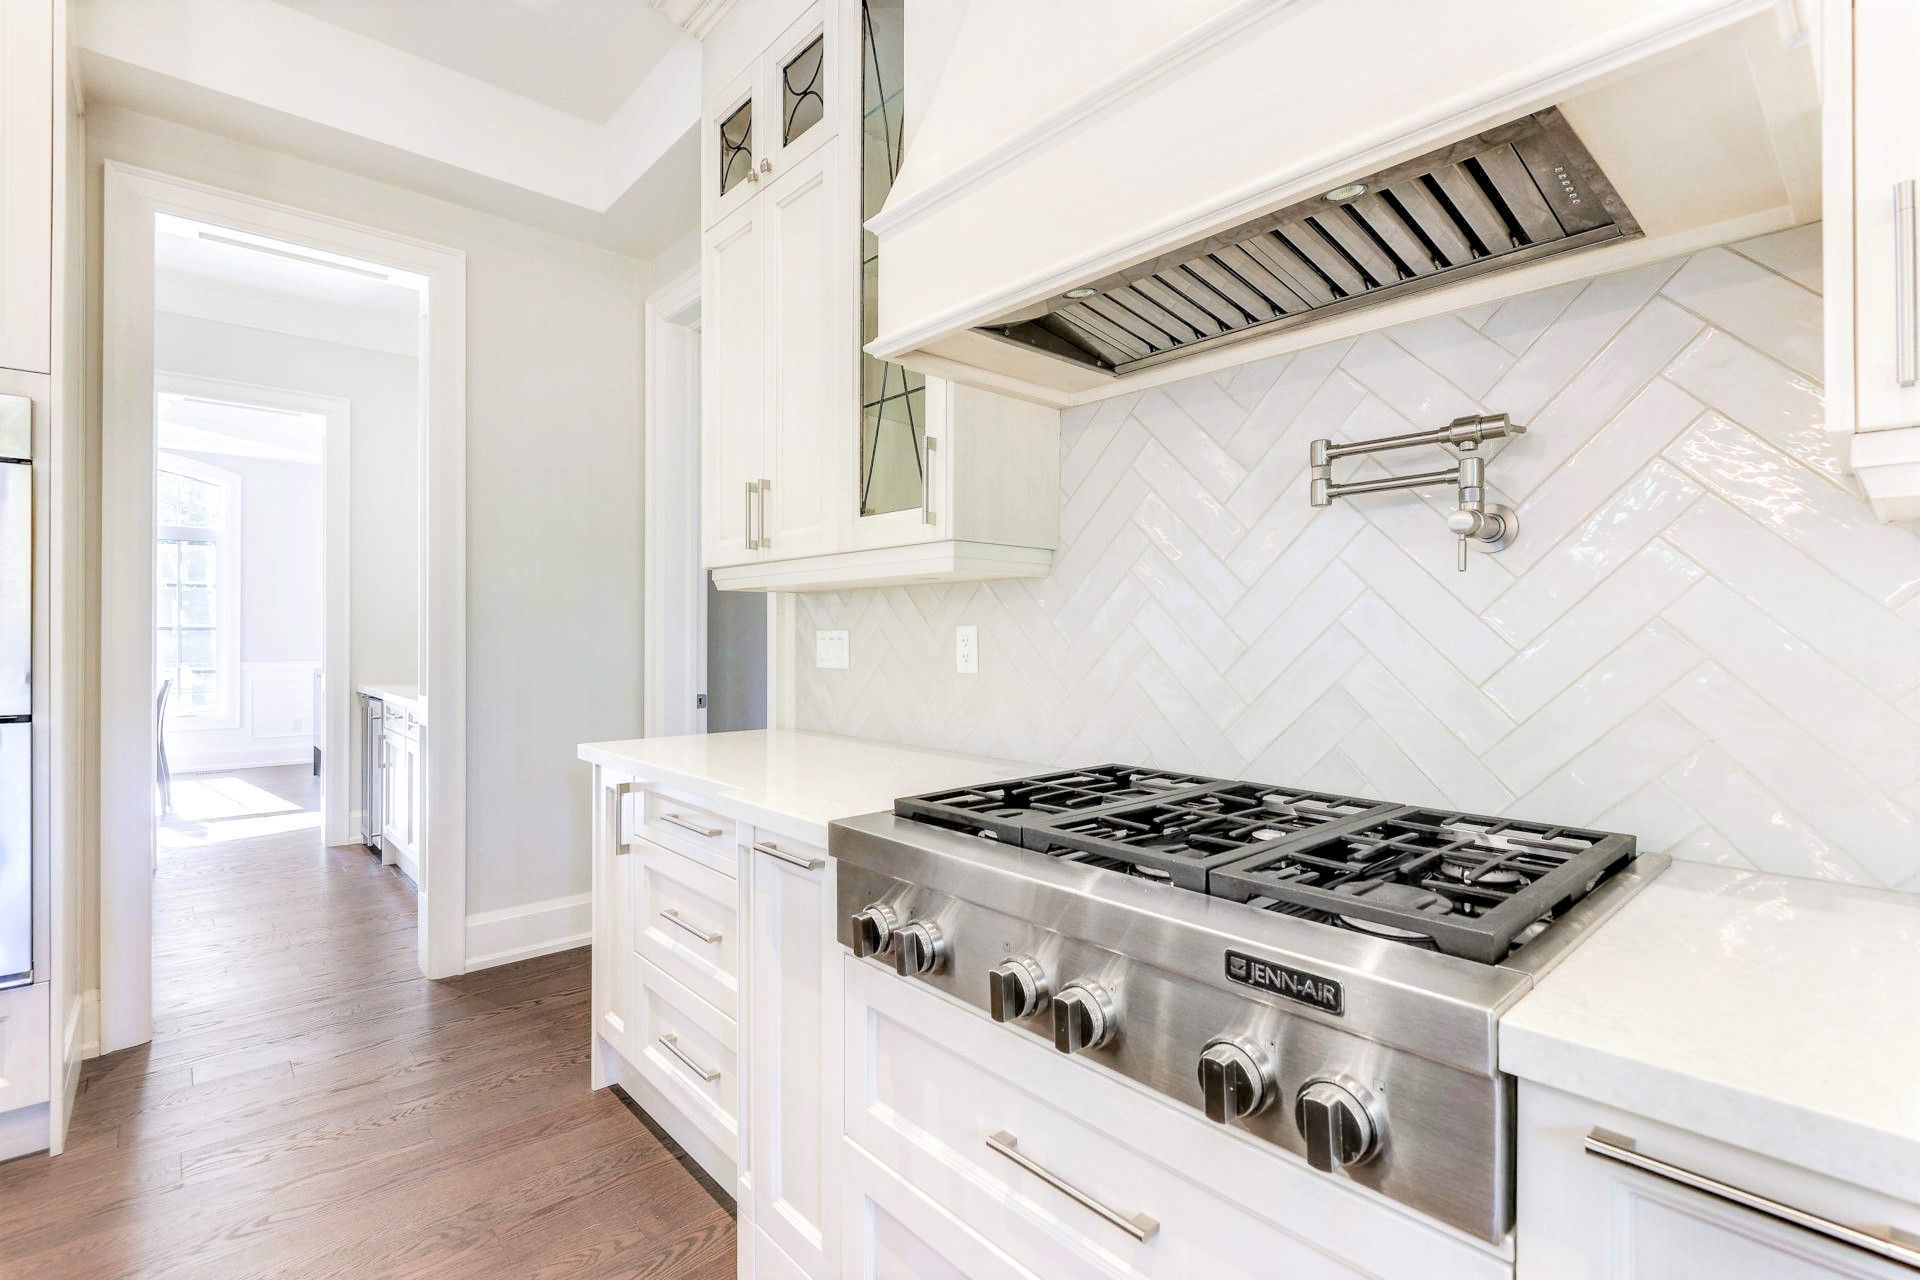 white kitchen with silver cooktop